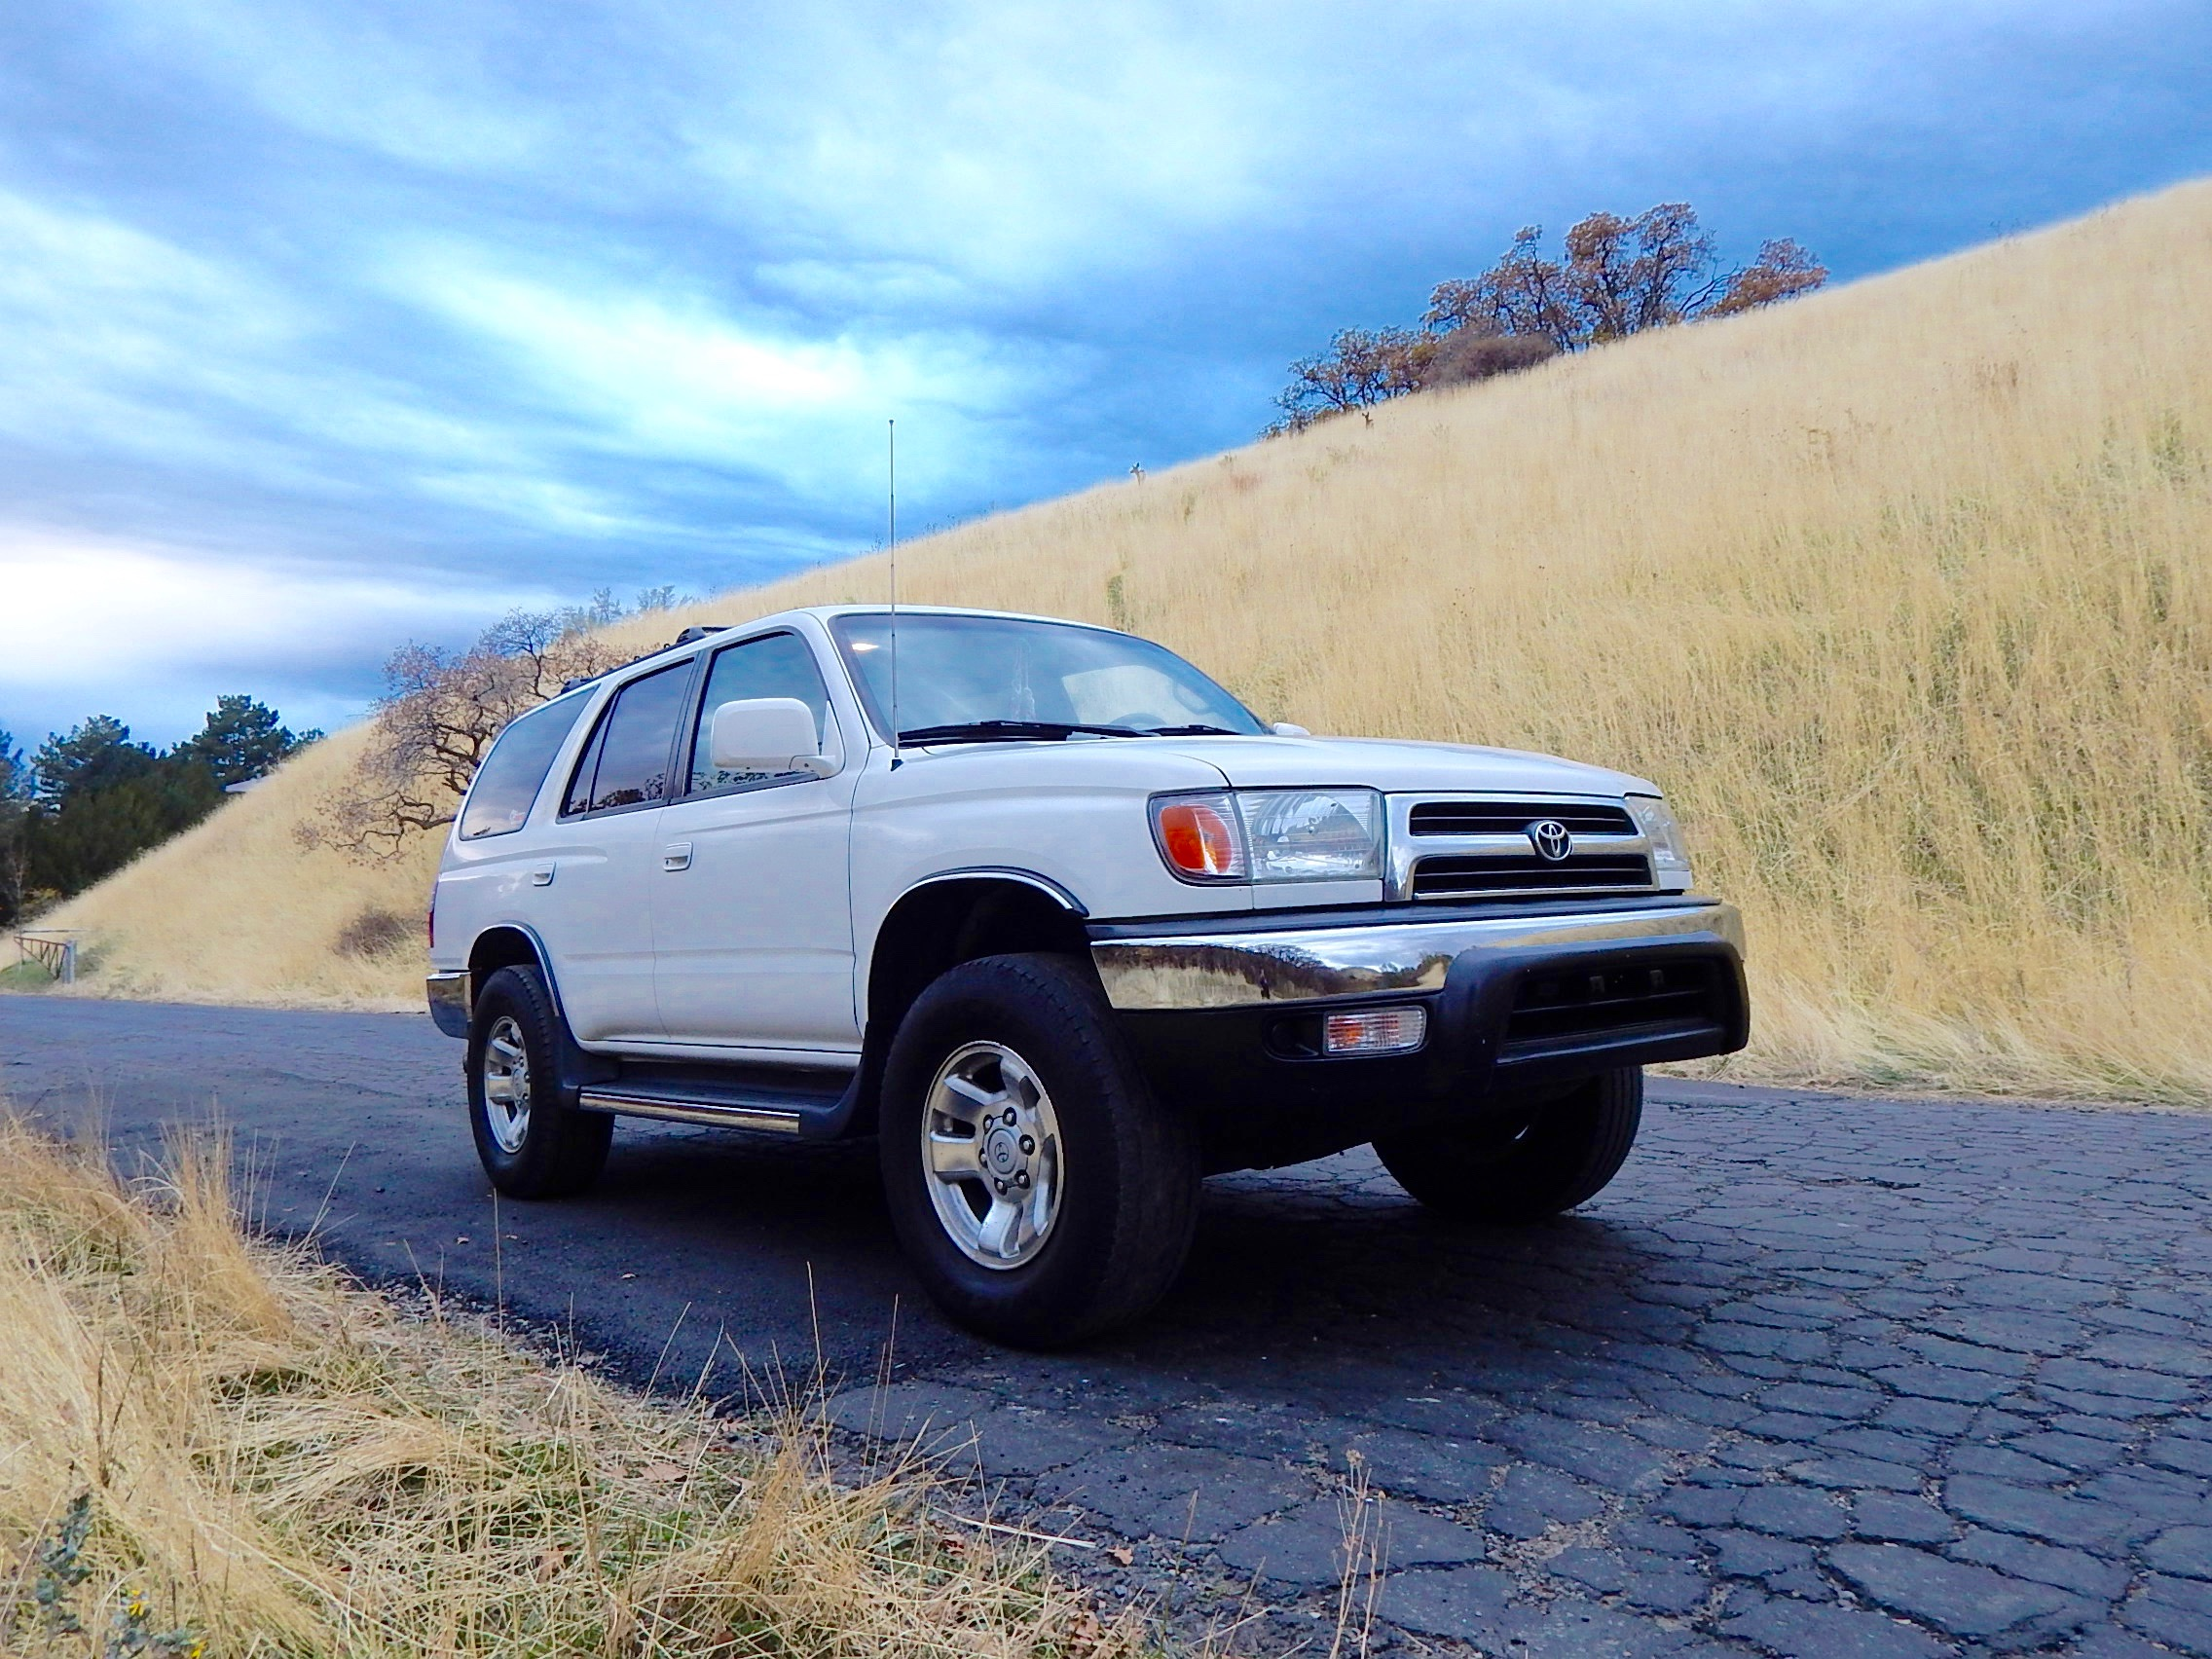 Coleman McVea's 99 Toyota 4Runner—See the deer up on the hill behind.